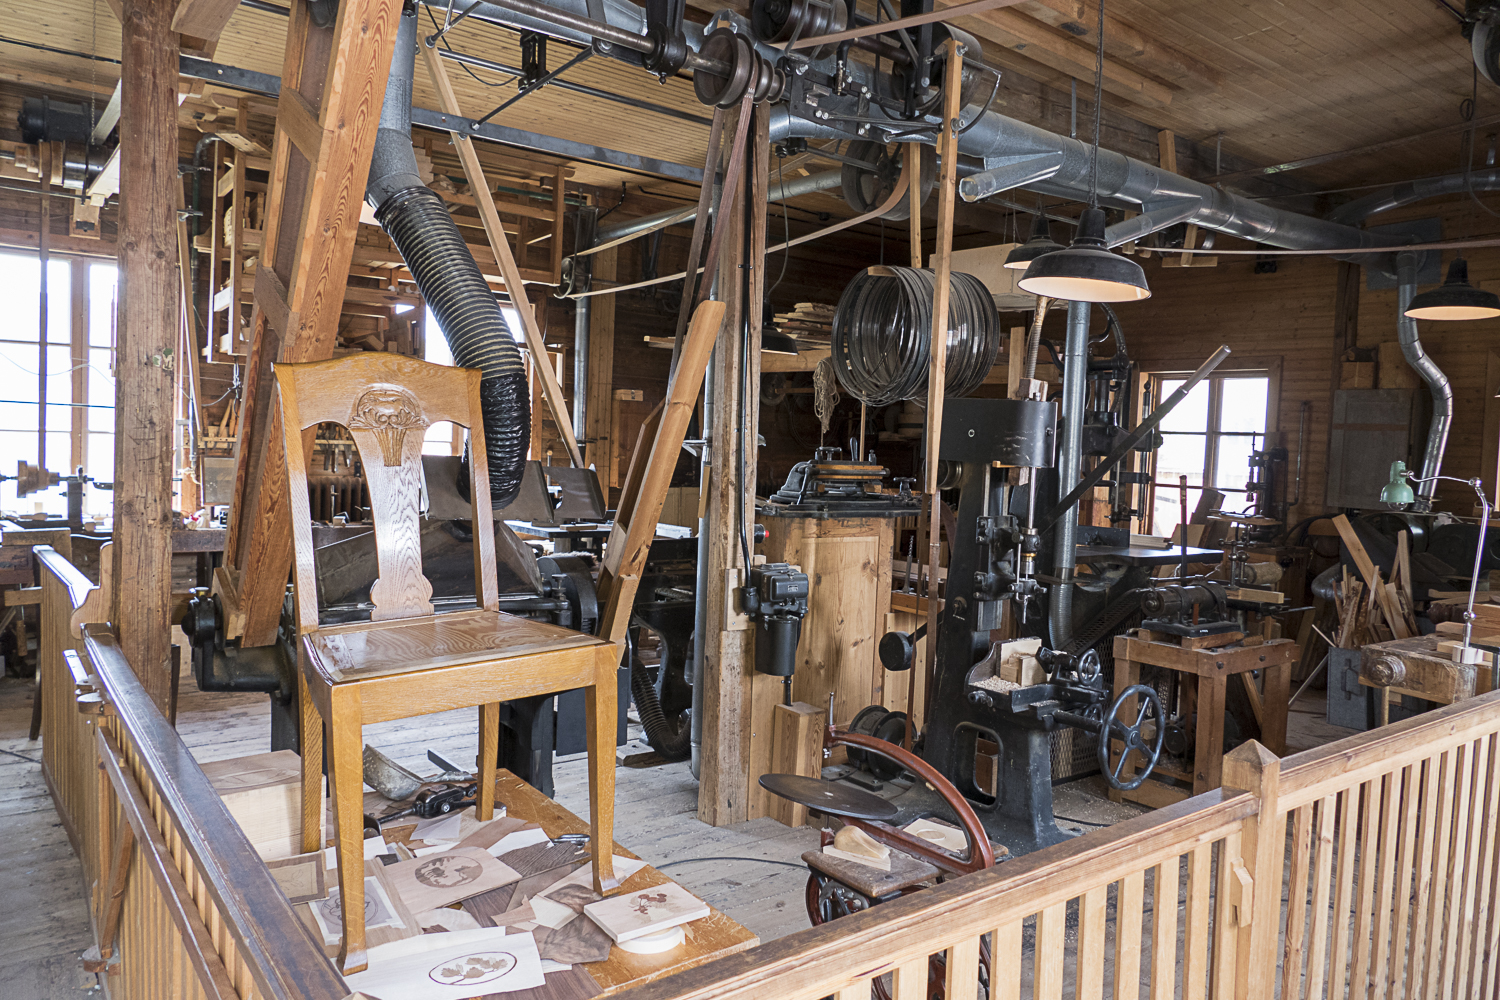 Woodworker's shop with all of the machinery running off a system of belts at the ceiling.